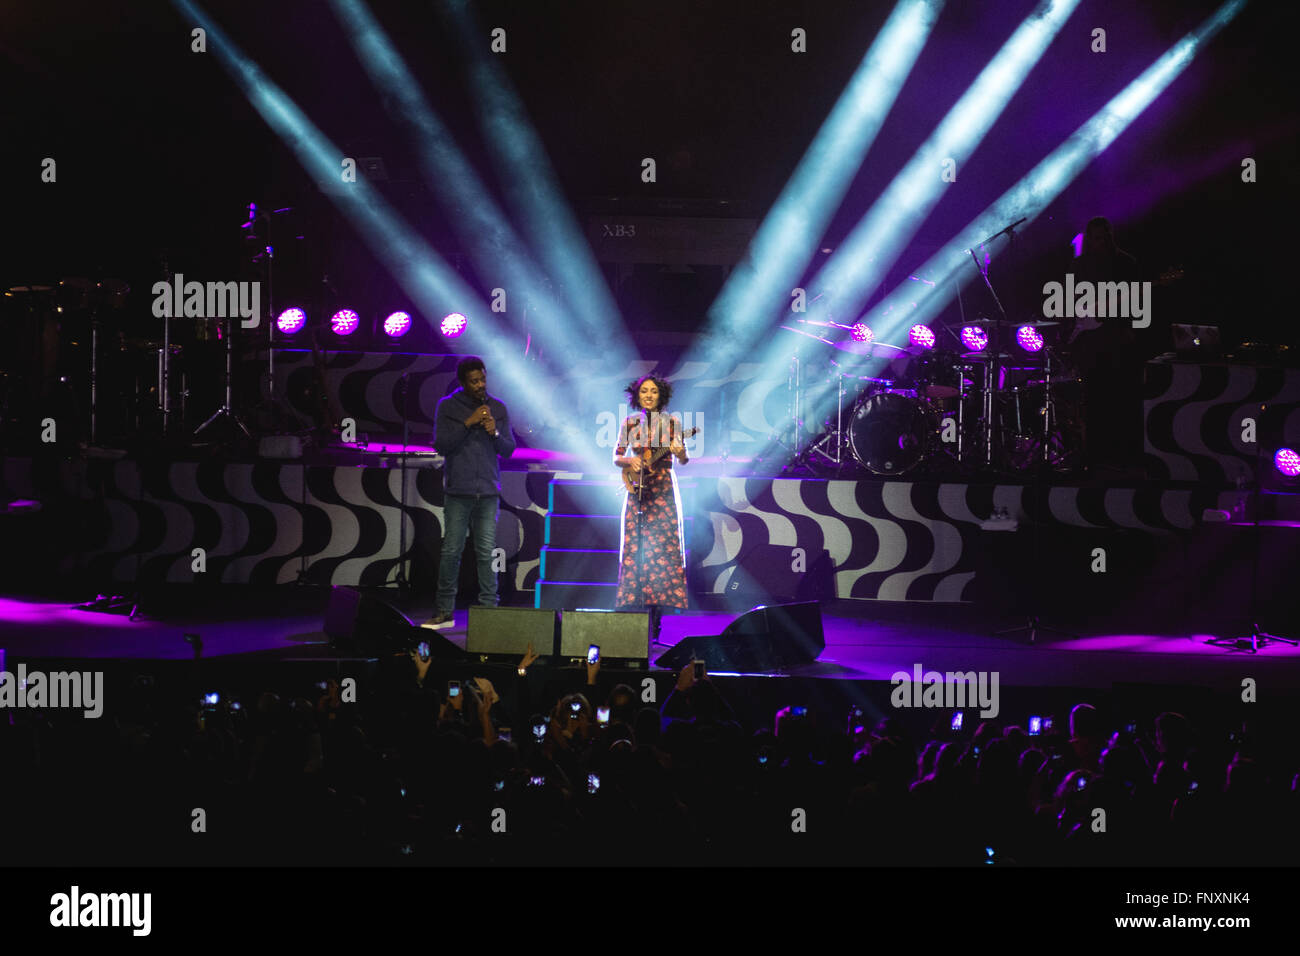 Seu Jorge and Marisa Monte live at Meo Arena, Lisboa, Portugal - Stock Image